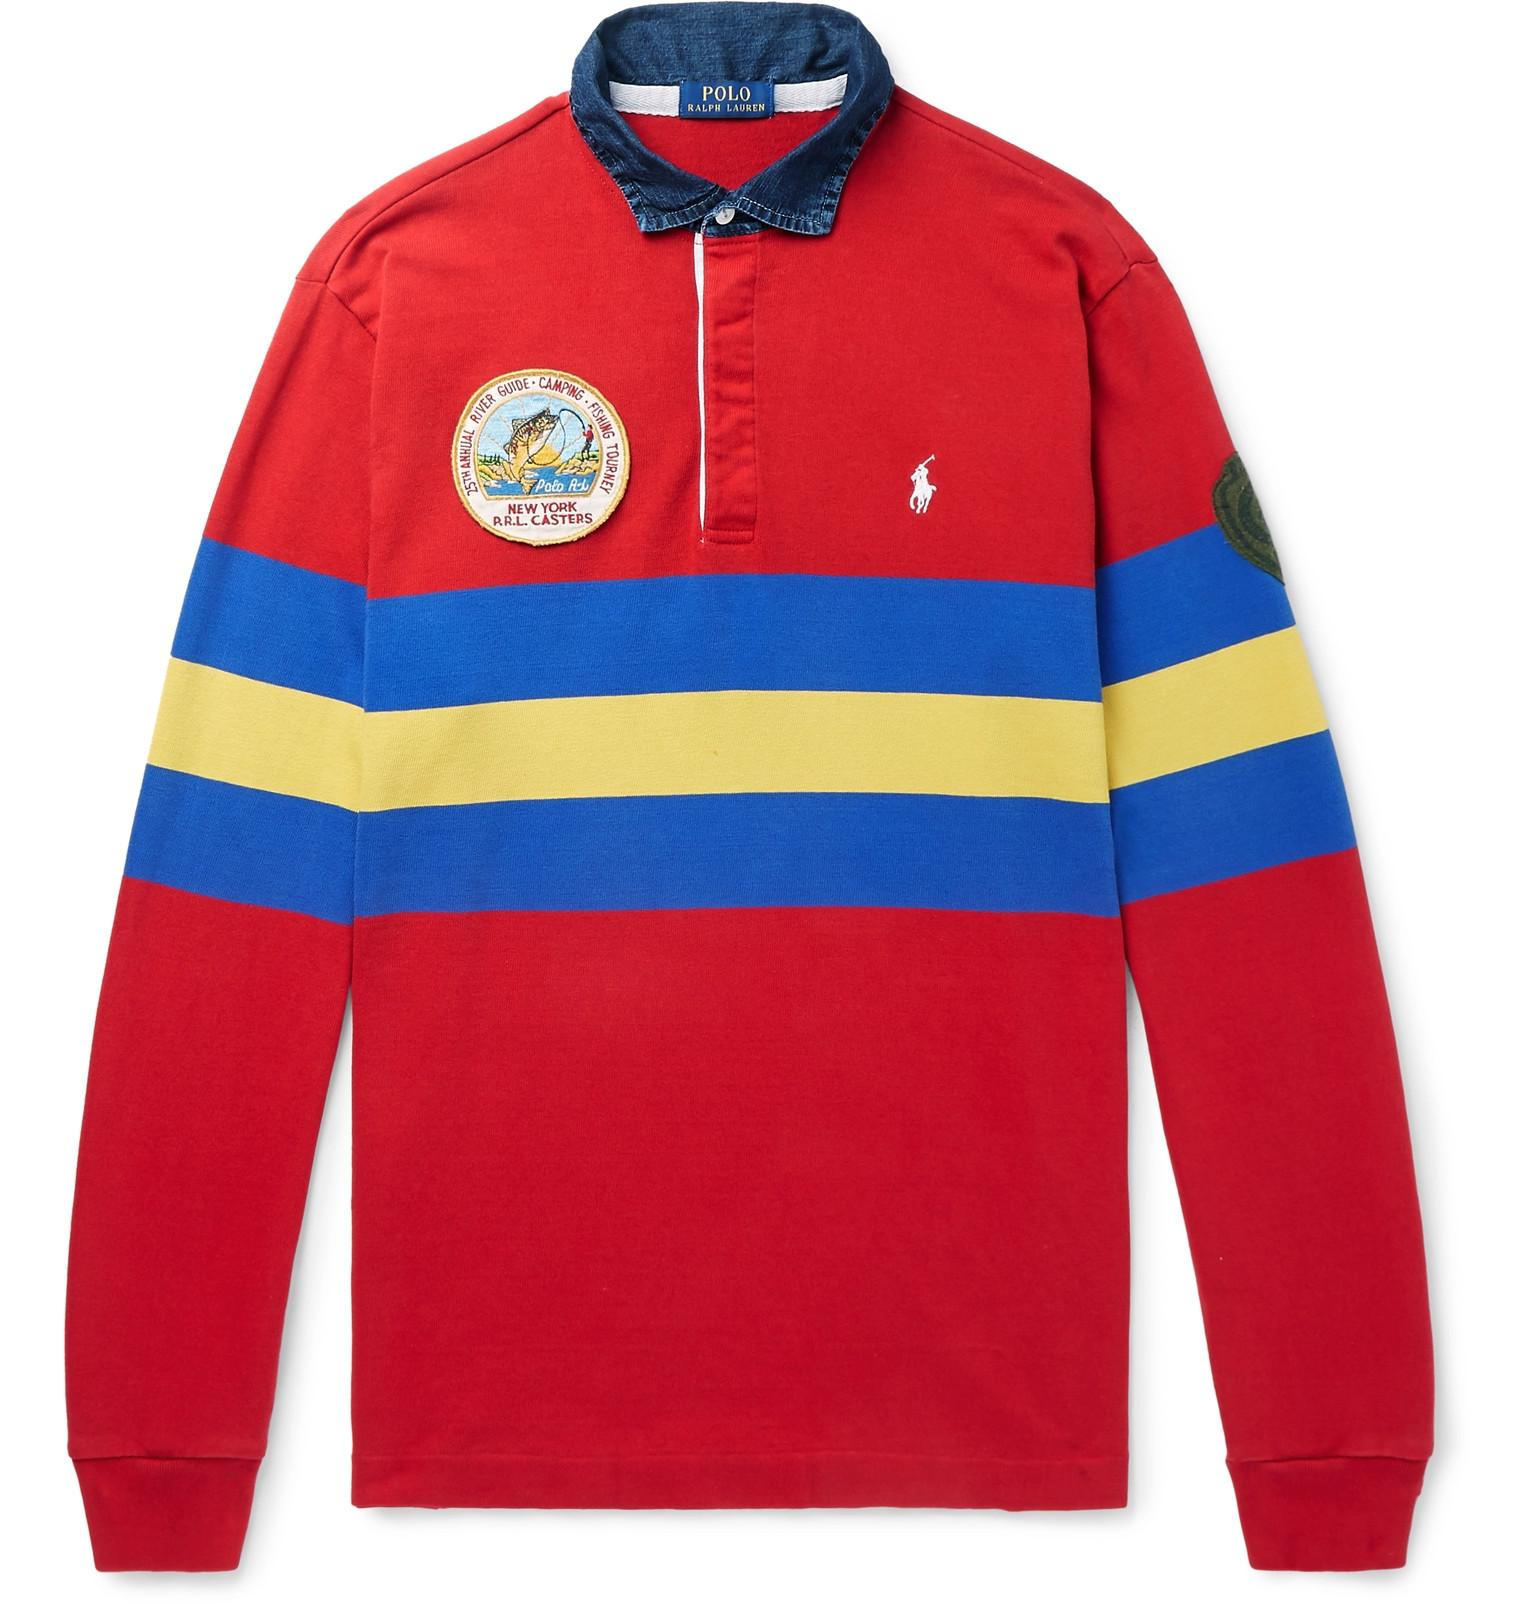 ce5610b0f Polo Ralph Lauren - Logo-embroidered Appliquéd Striped Jersey Polo Shirt  for Men - Lyst